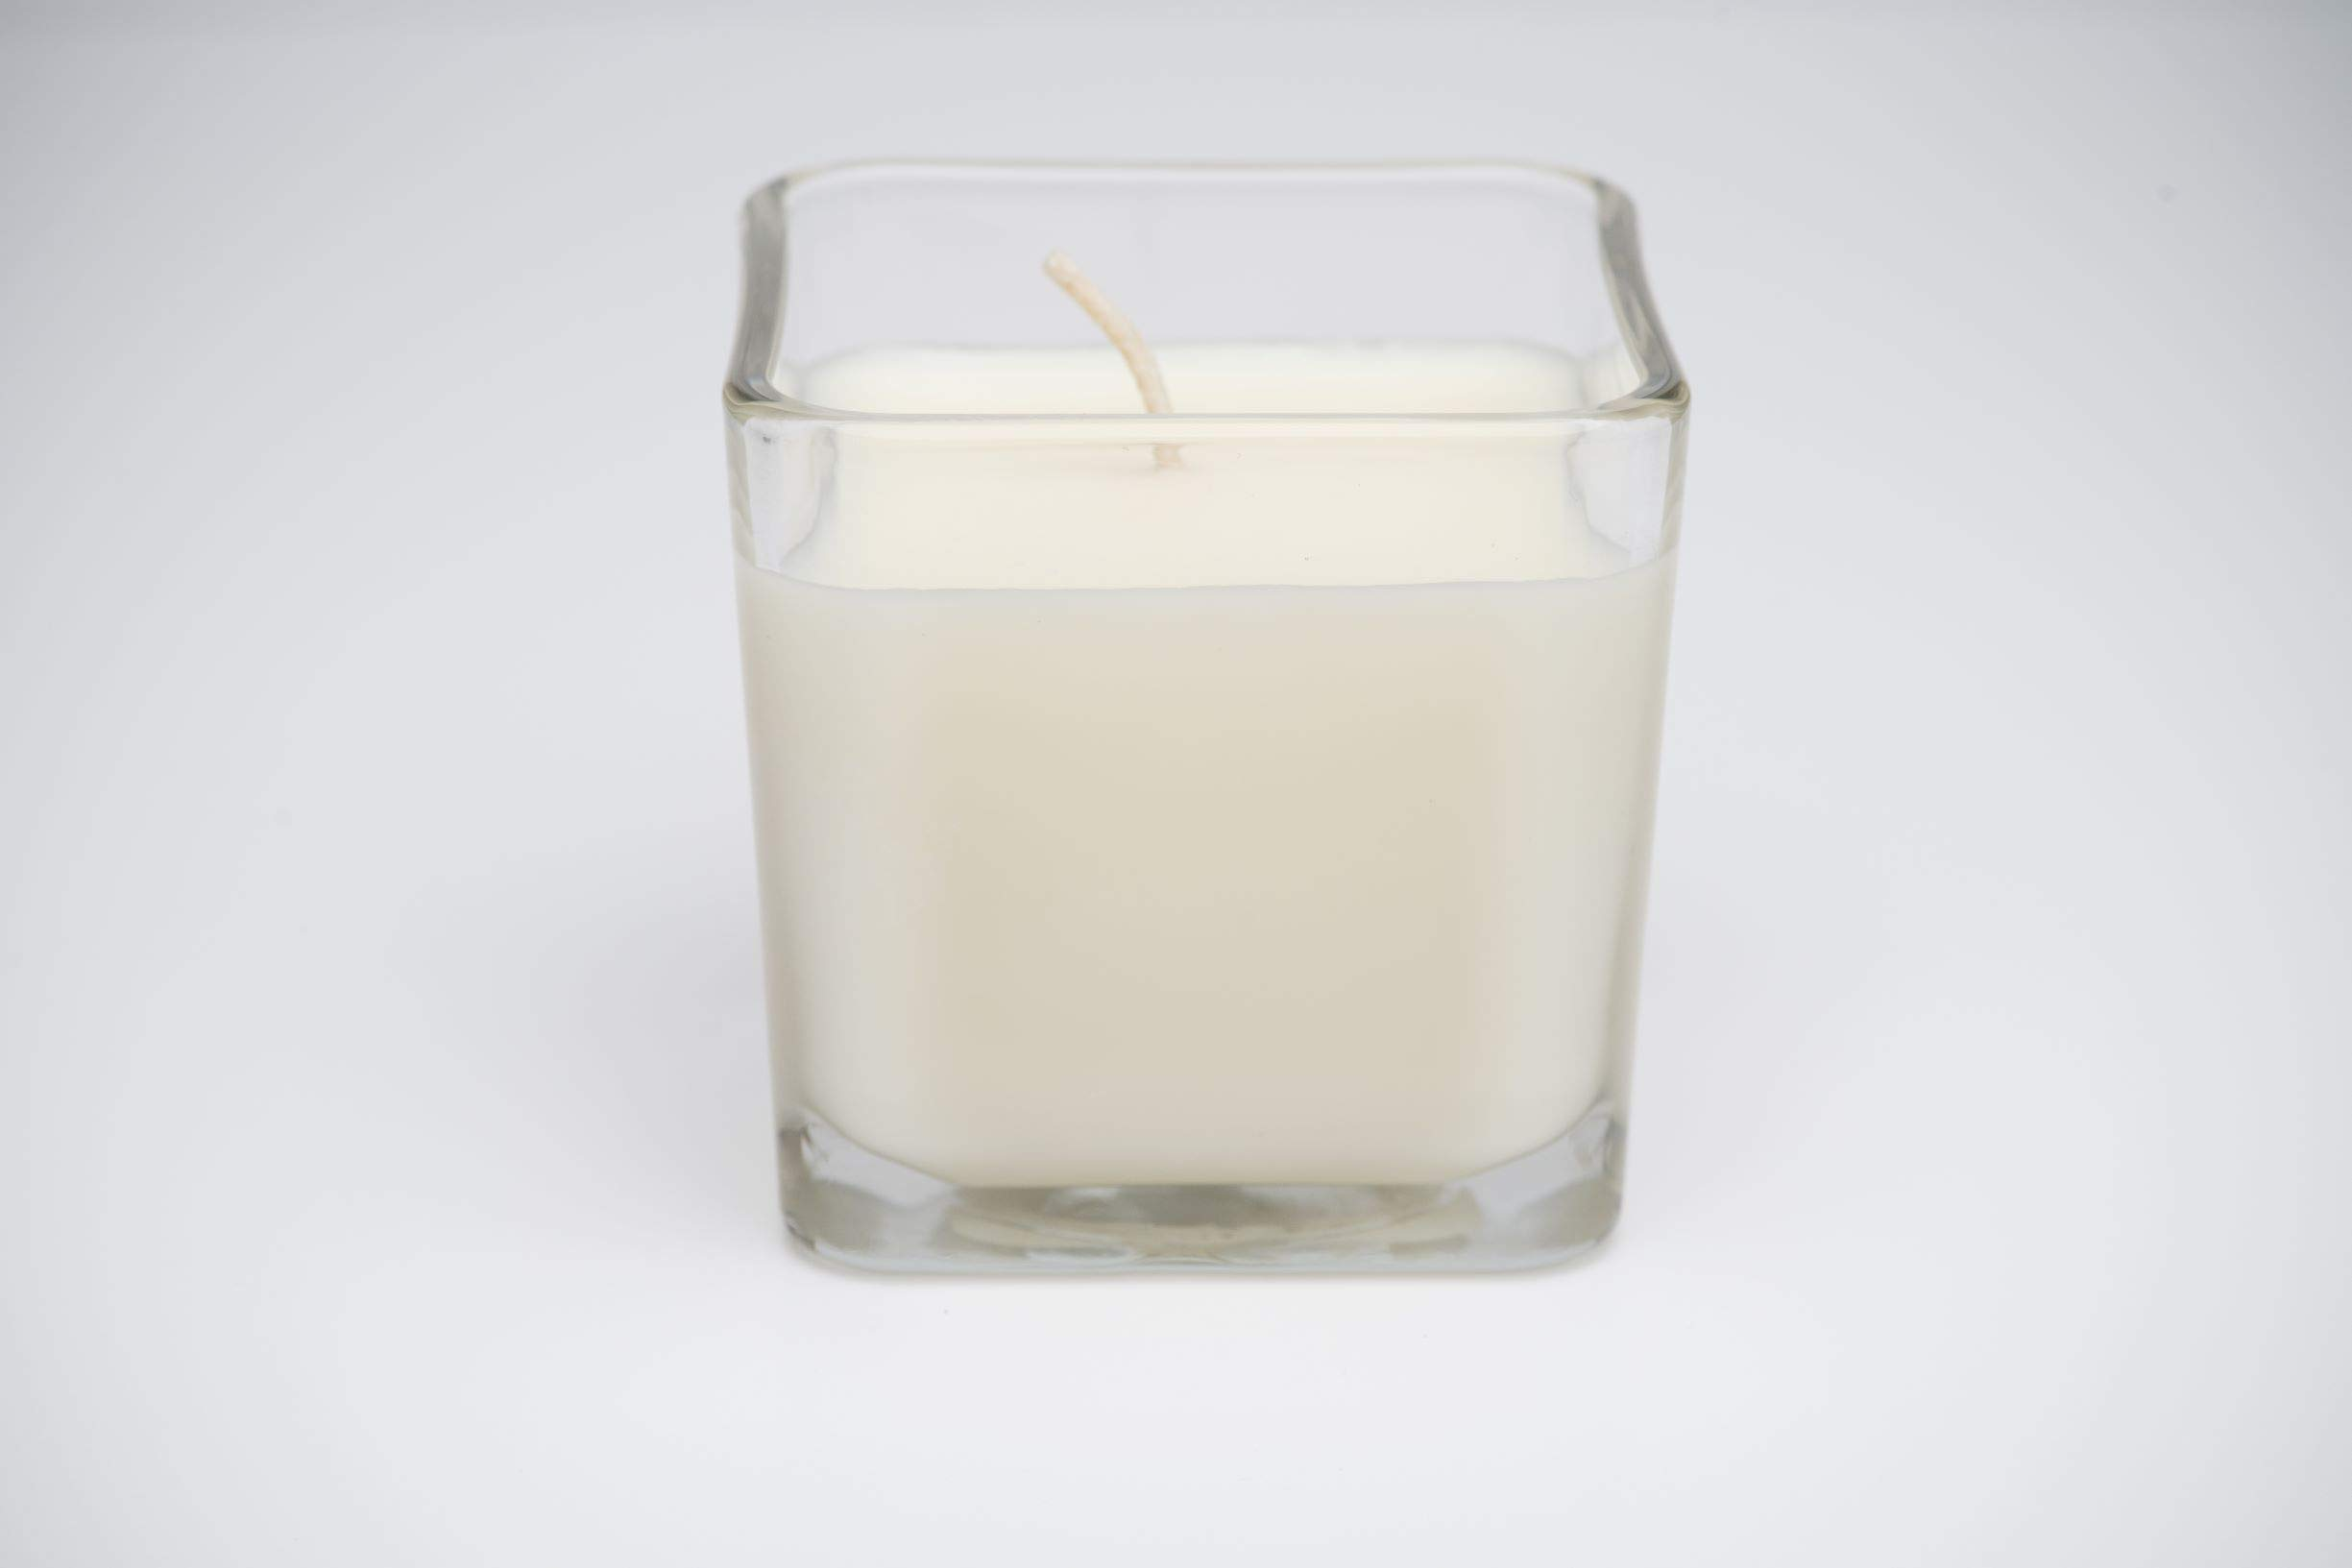 Creative Energy Candle - 2-in-1 Soy Lotion Candle (Simply Unscented) by Creative Energy Candles